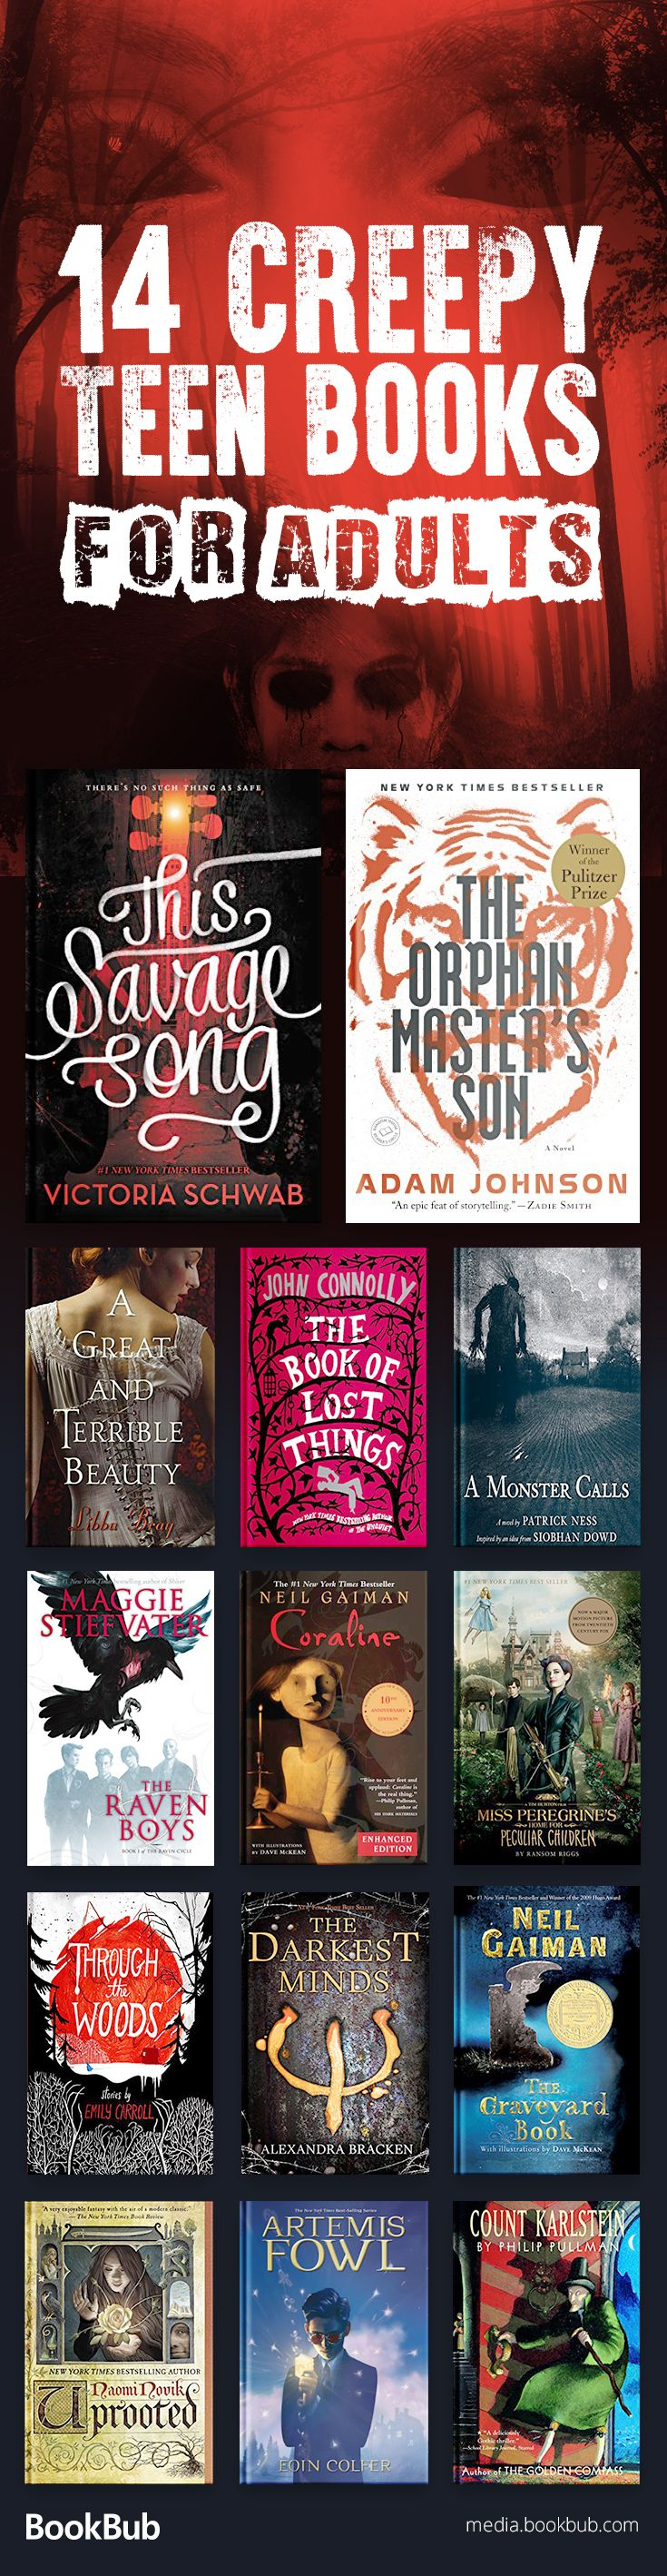 Best 25 Teen Fiction Books Ideas On Pinterest  Young Adult Books, Teen Fantasy Books And Book -7814